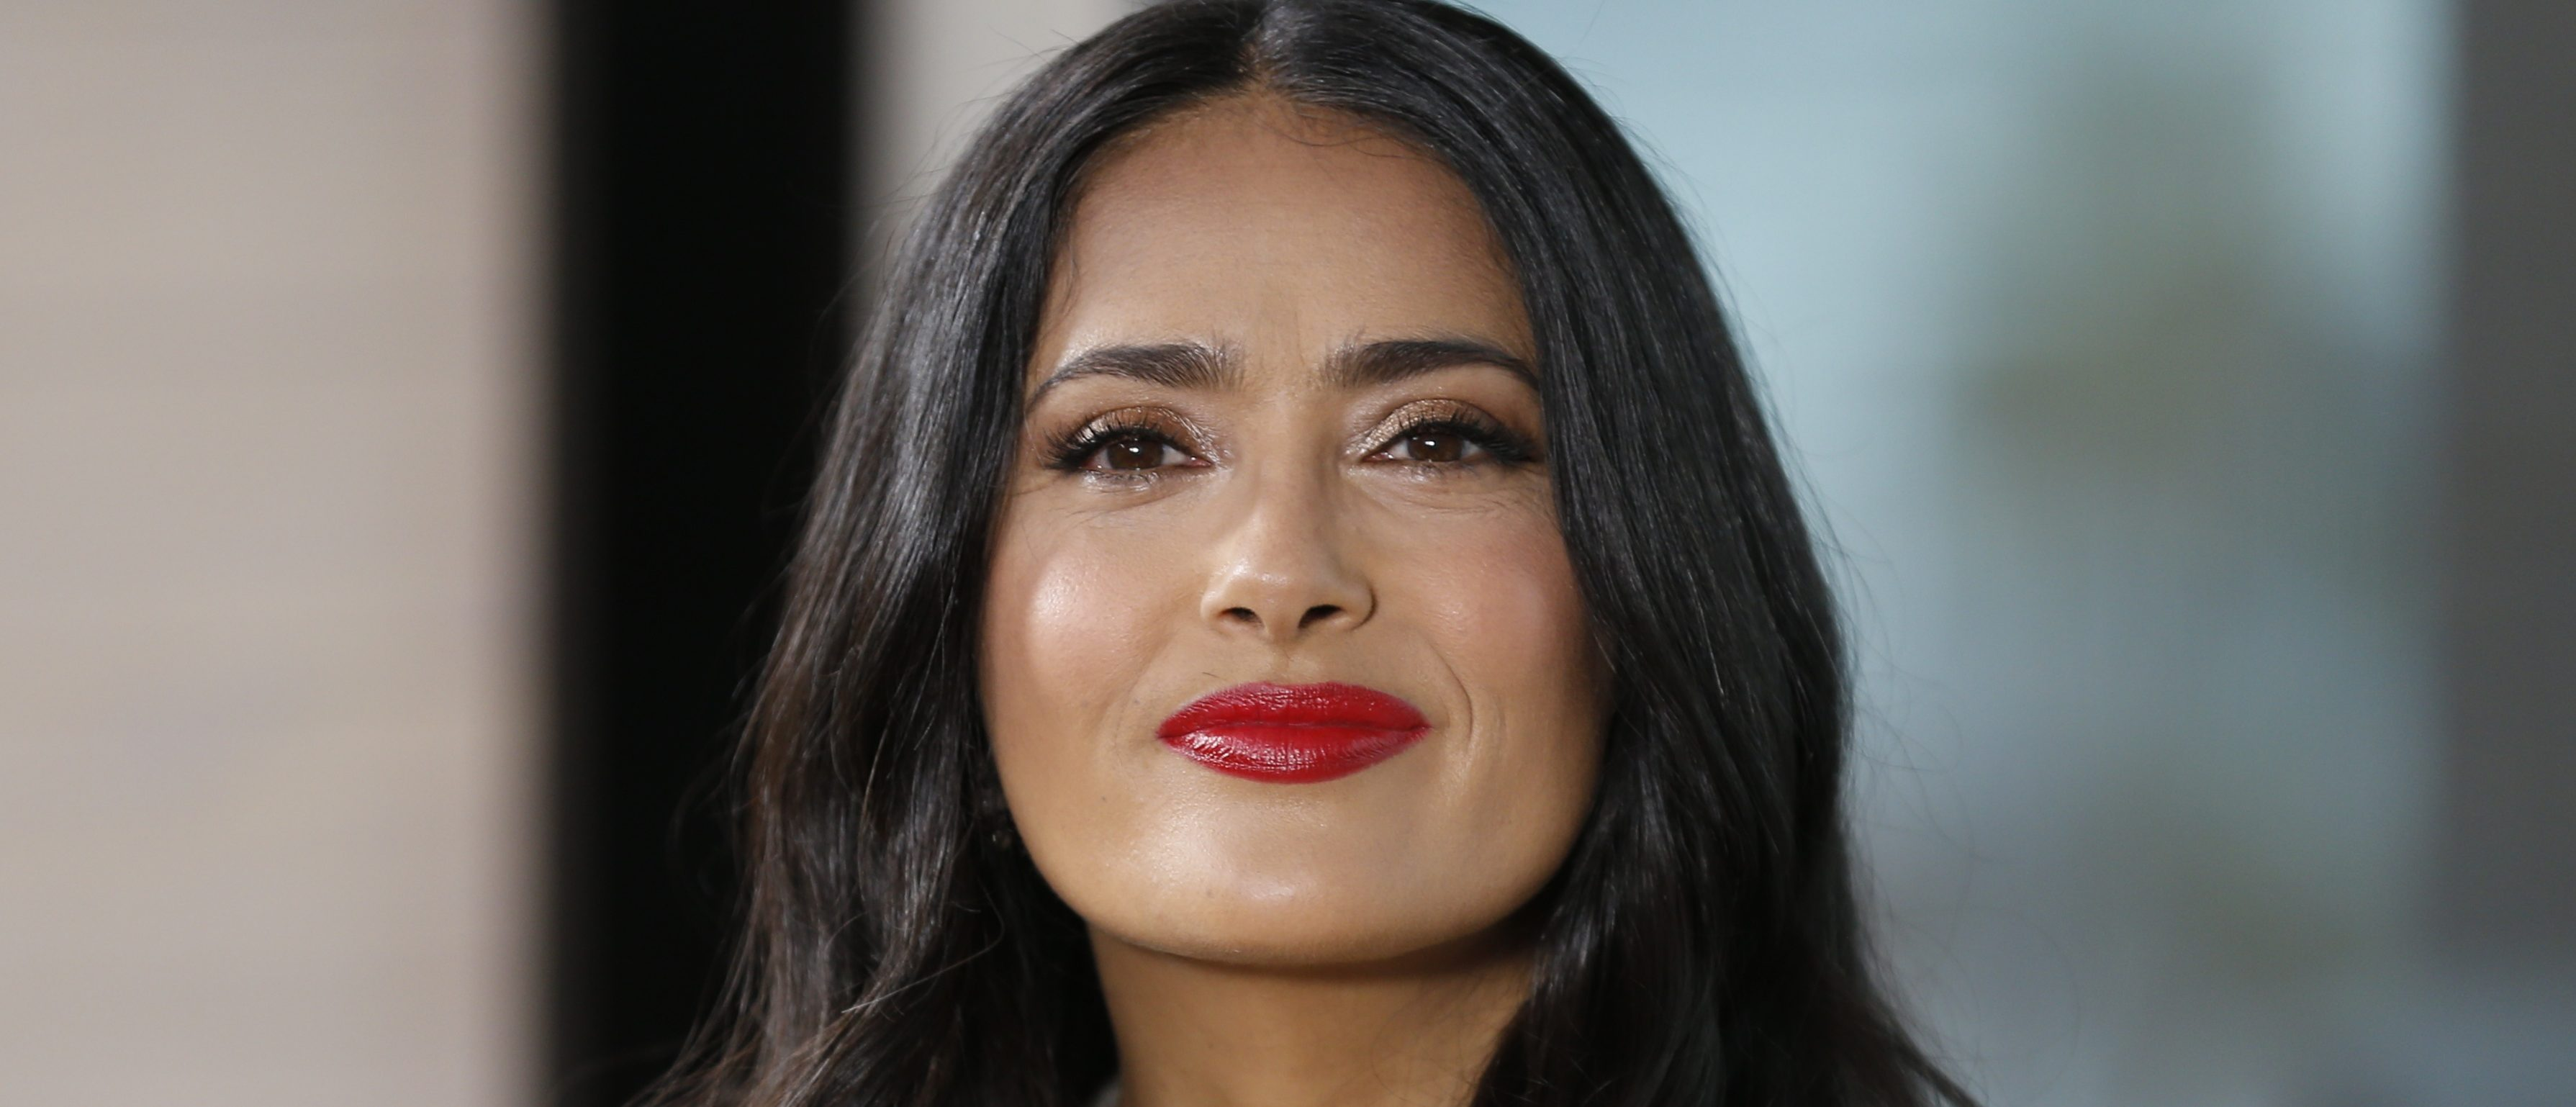 Salma Hayek poses at the 71st Cannes Film Festival in Cannes, France May 13, 2018. REUTERS/Regis Duvignau